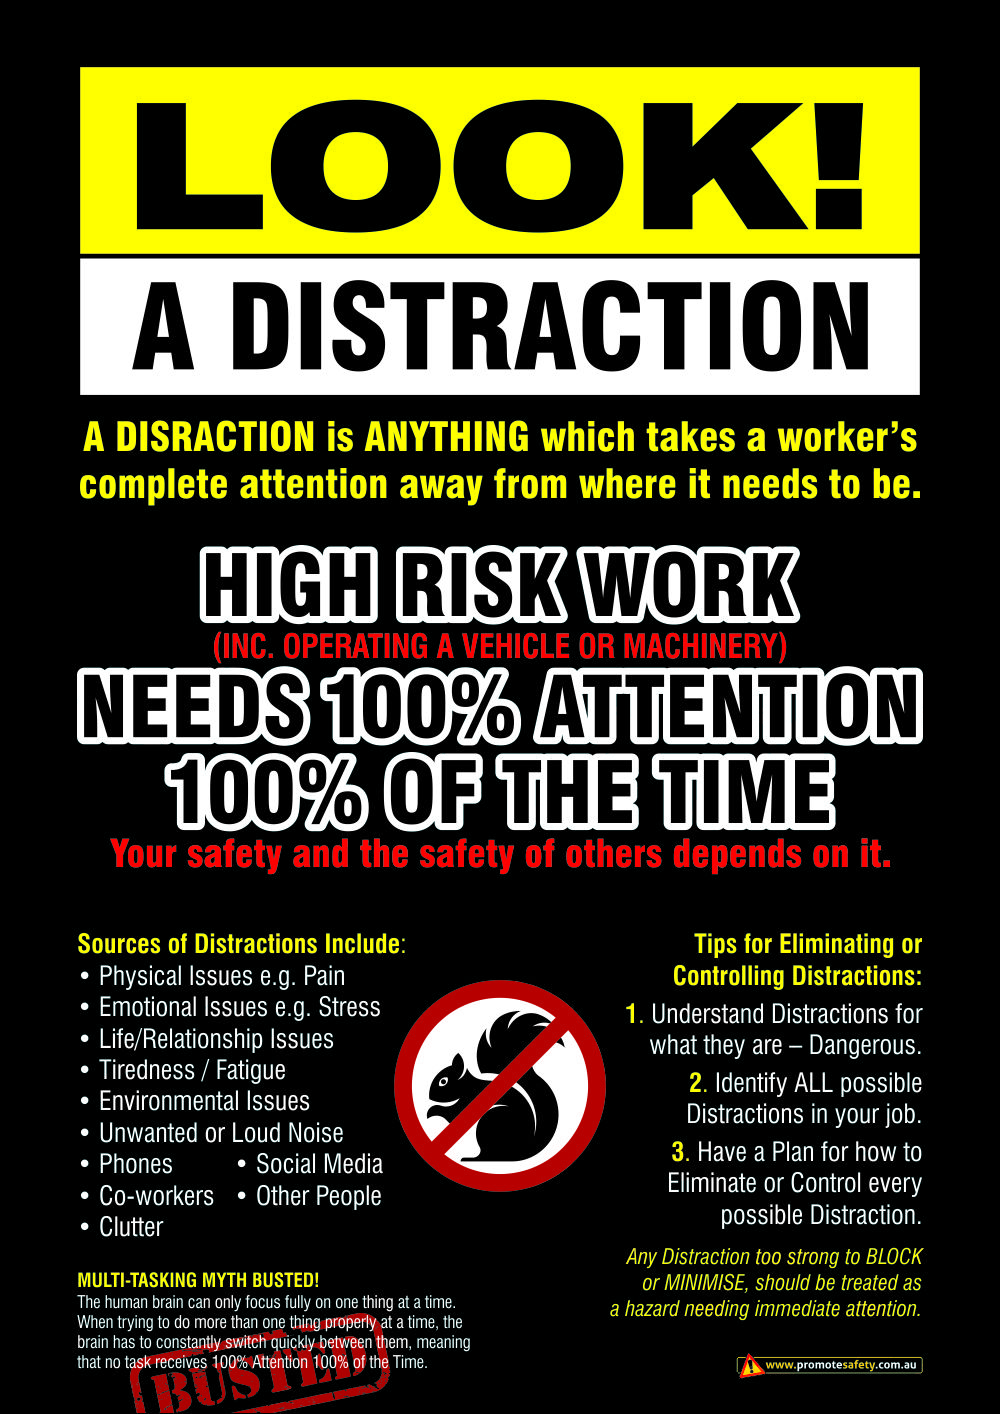 The biggest danger at work is distractions. Workplace